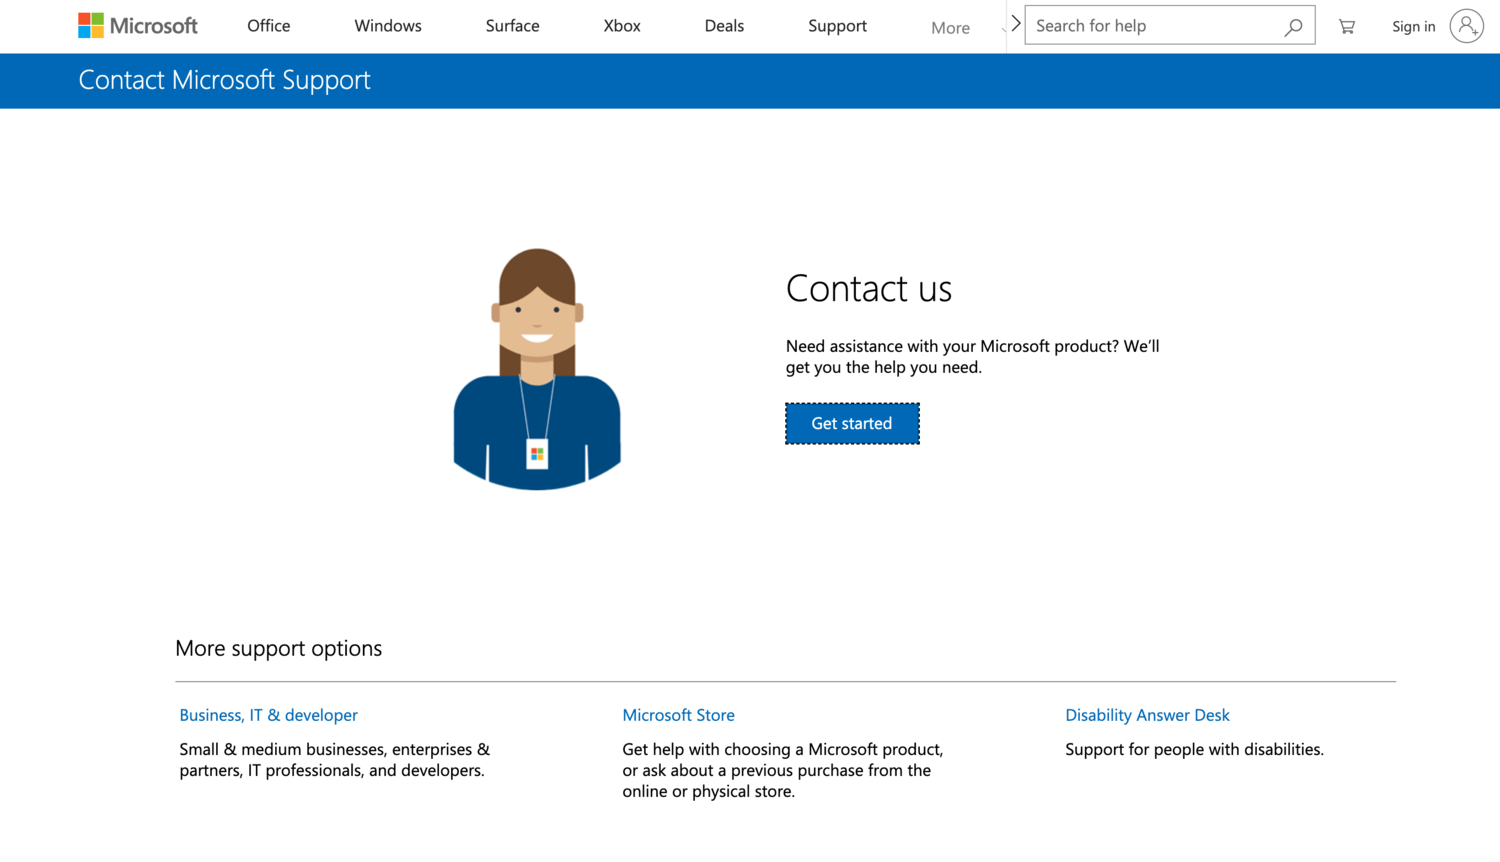 microsoft contact self-service